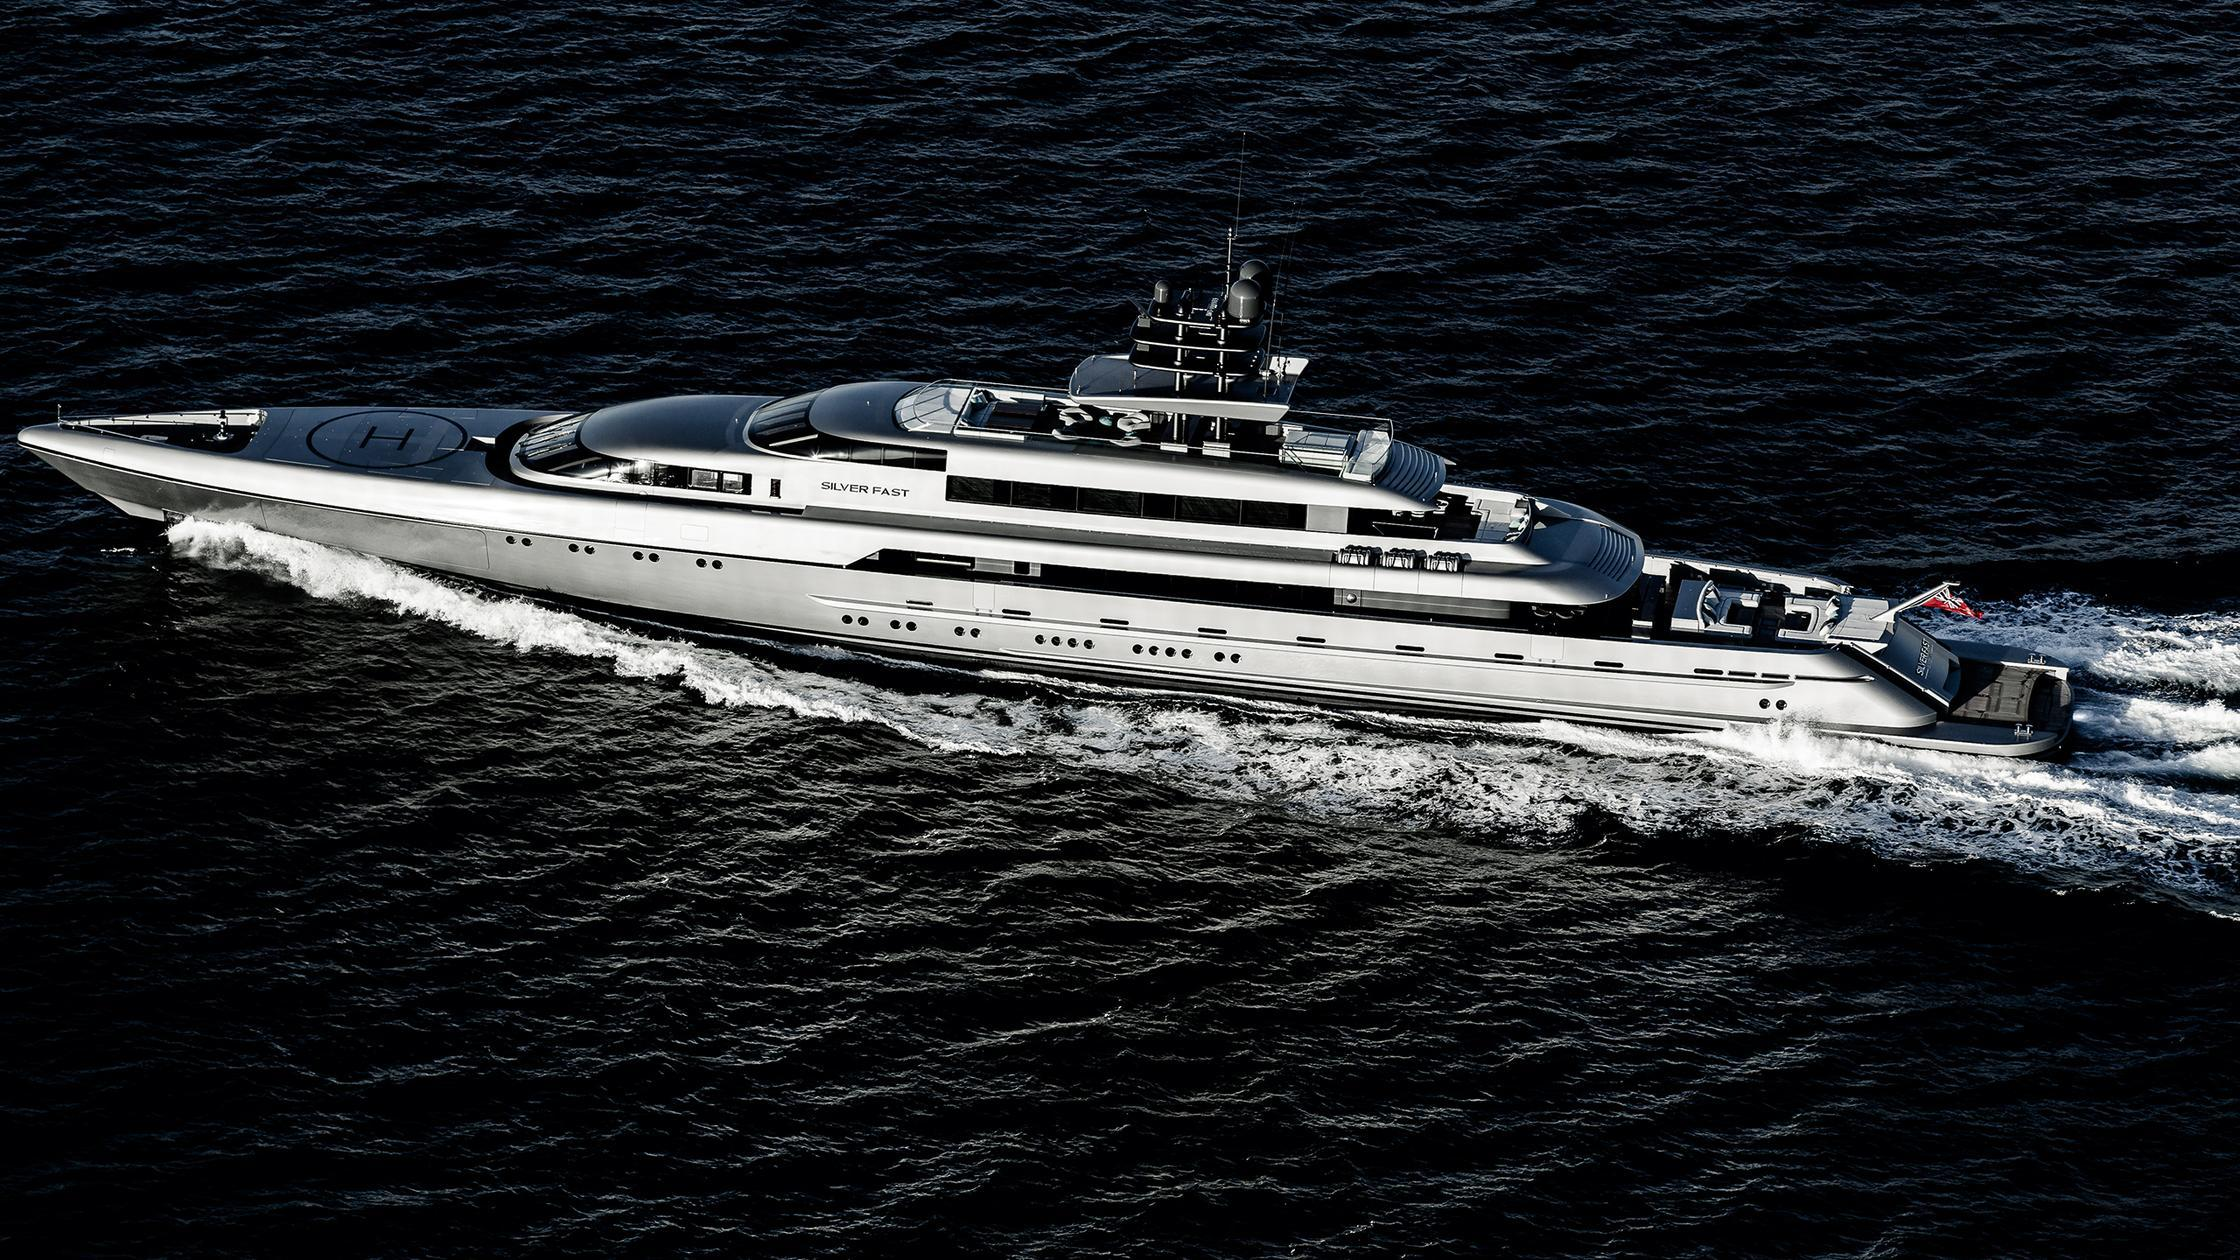 silver-fast-motor-yacht-2015-77m-cruising-profile